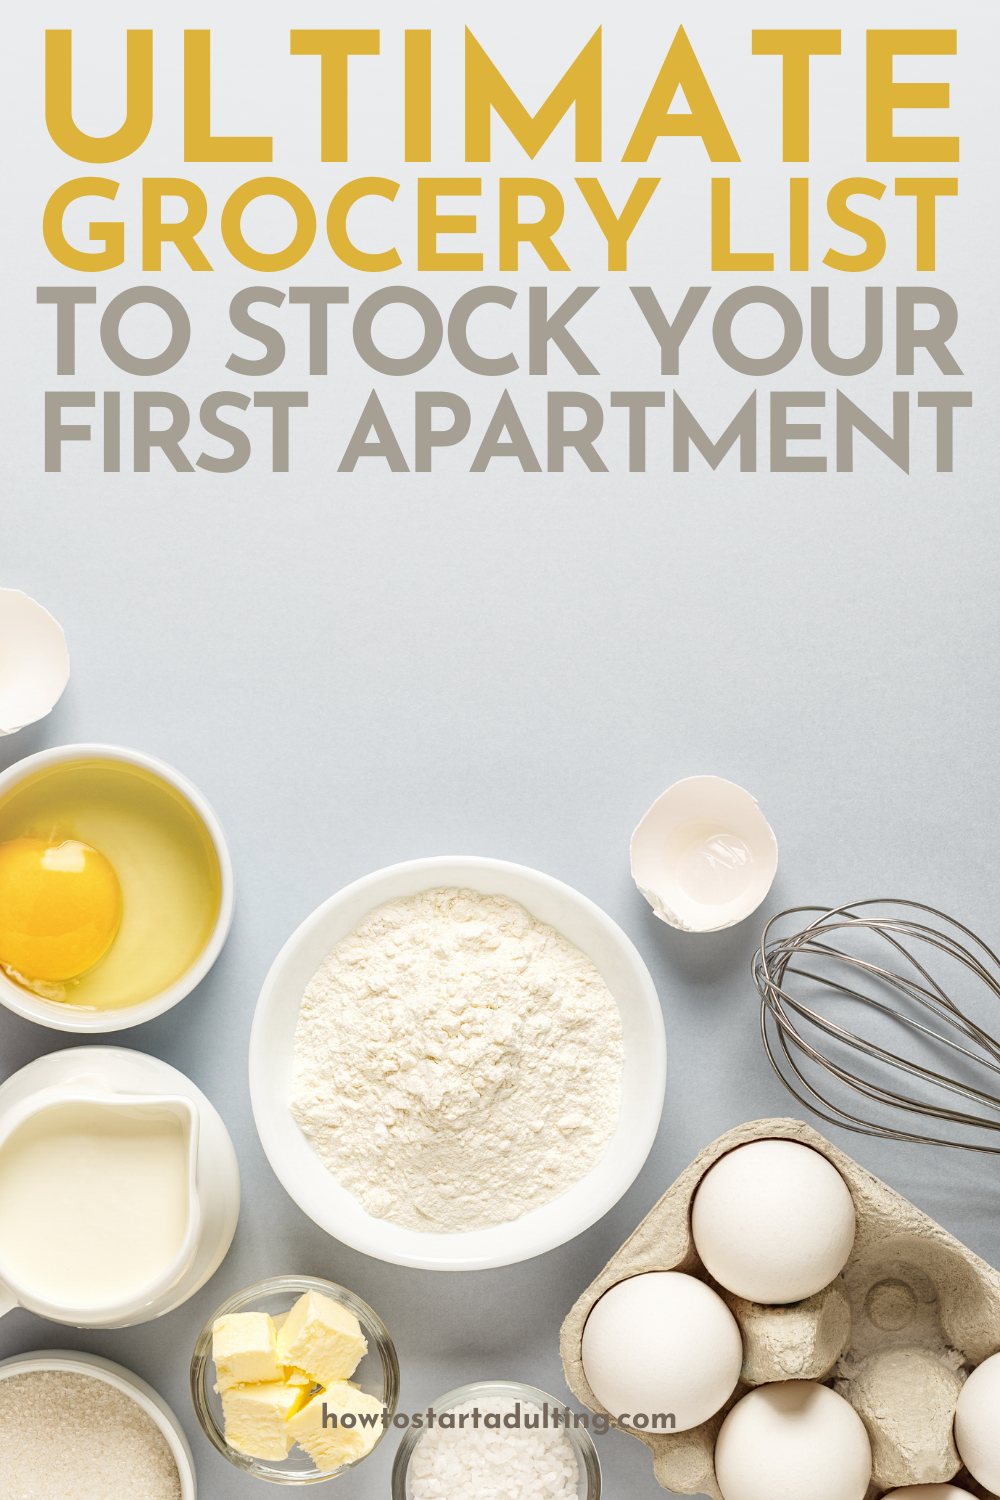 Ultimate Grocery List To Stock Your Pantry And Fridge For Your First Place, Groceries for First apartment kitchen #groceryshopping #groceries #firstplace #firstapartment #grocerylist #adulting